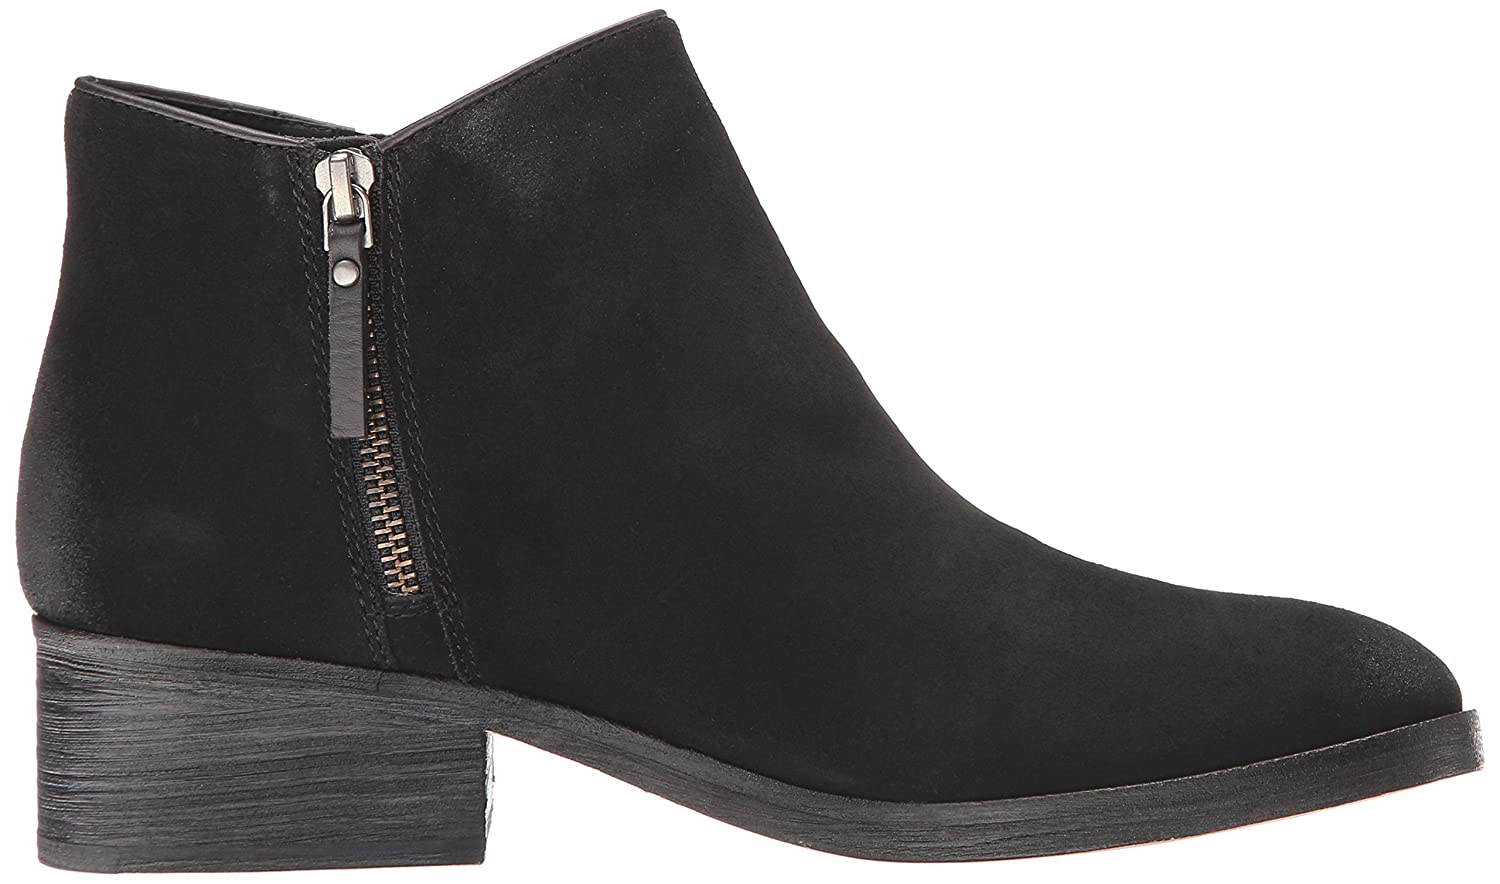 Cole Haan 6.5 Women's Hayes Flat Ankle Bootie B01FX6XDXG 6.5 Haan M US|Black Suede e3c5b9